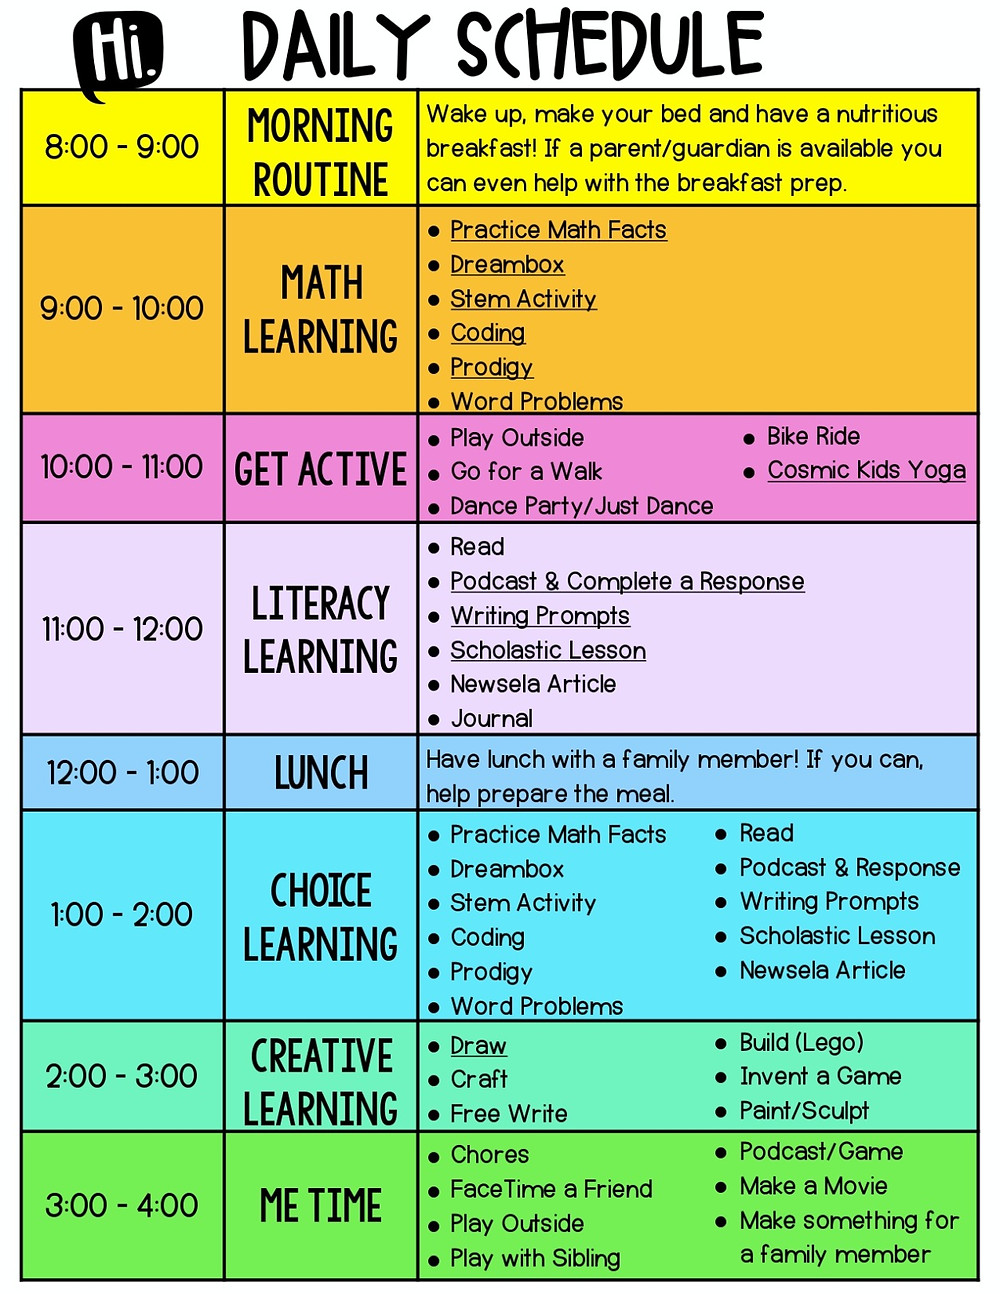 Daily schedule from https://www.lessonsforlearning.com/